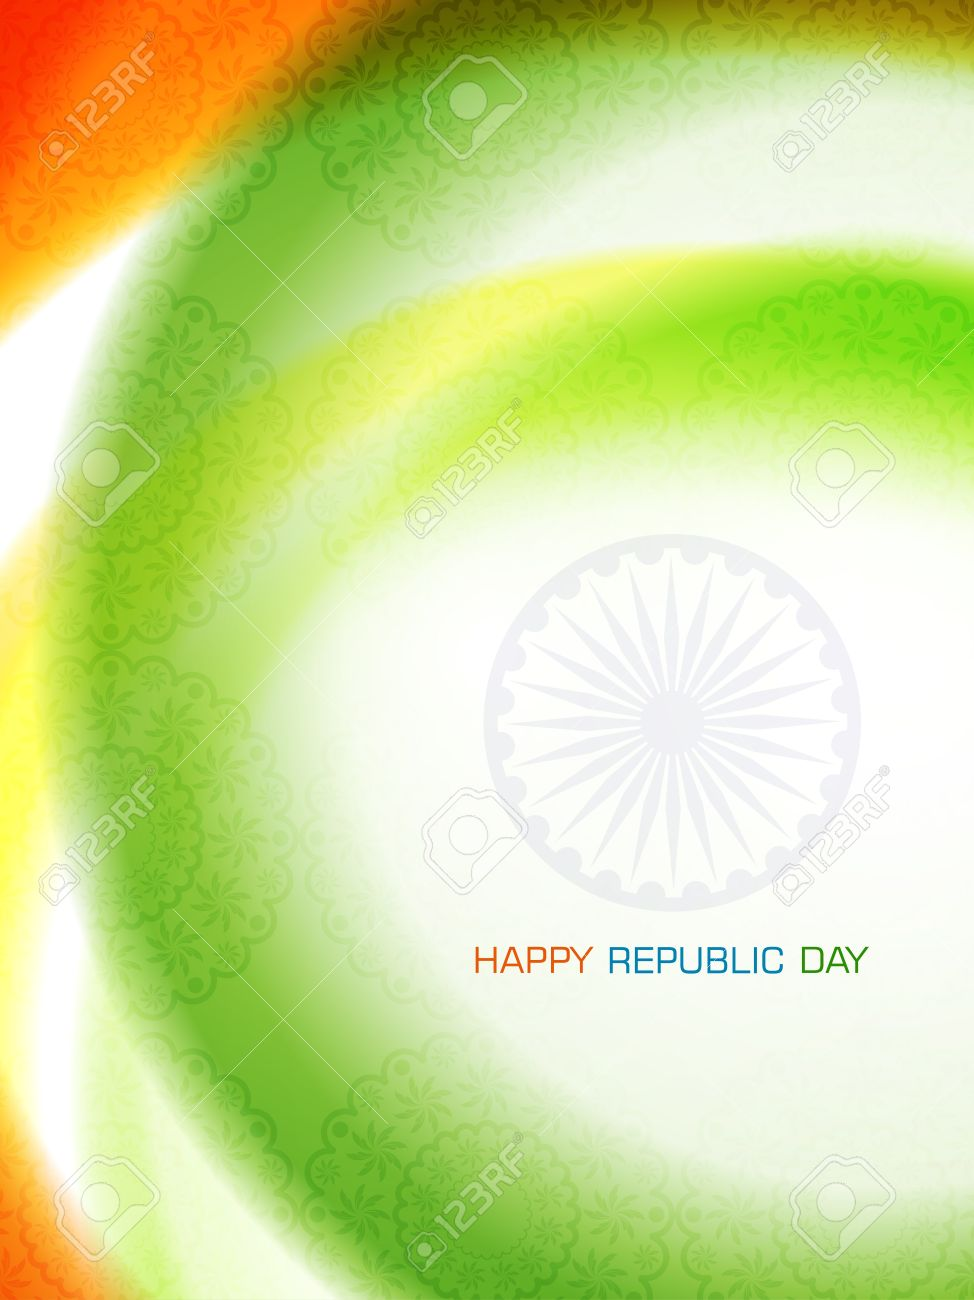 Beautiful background design for Indian republic day Stock Vector - 17213922